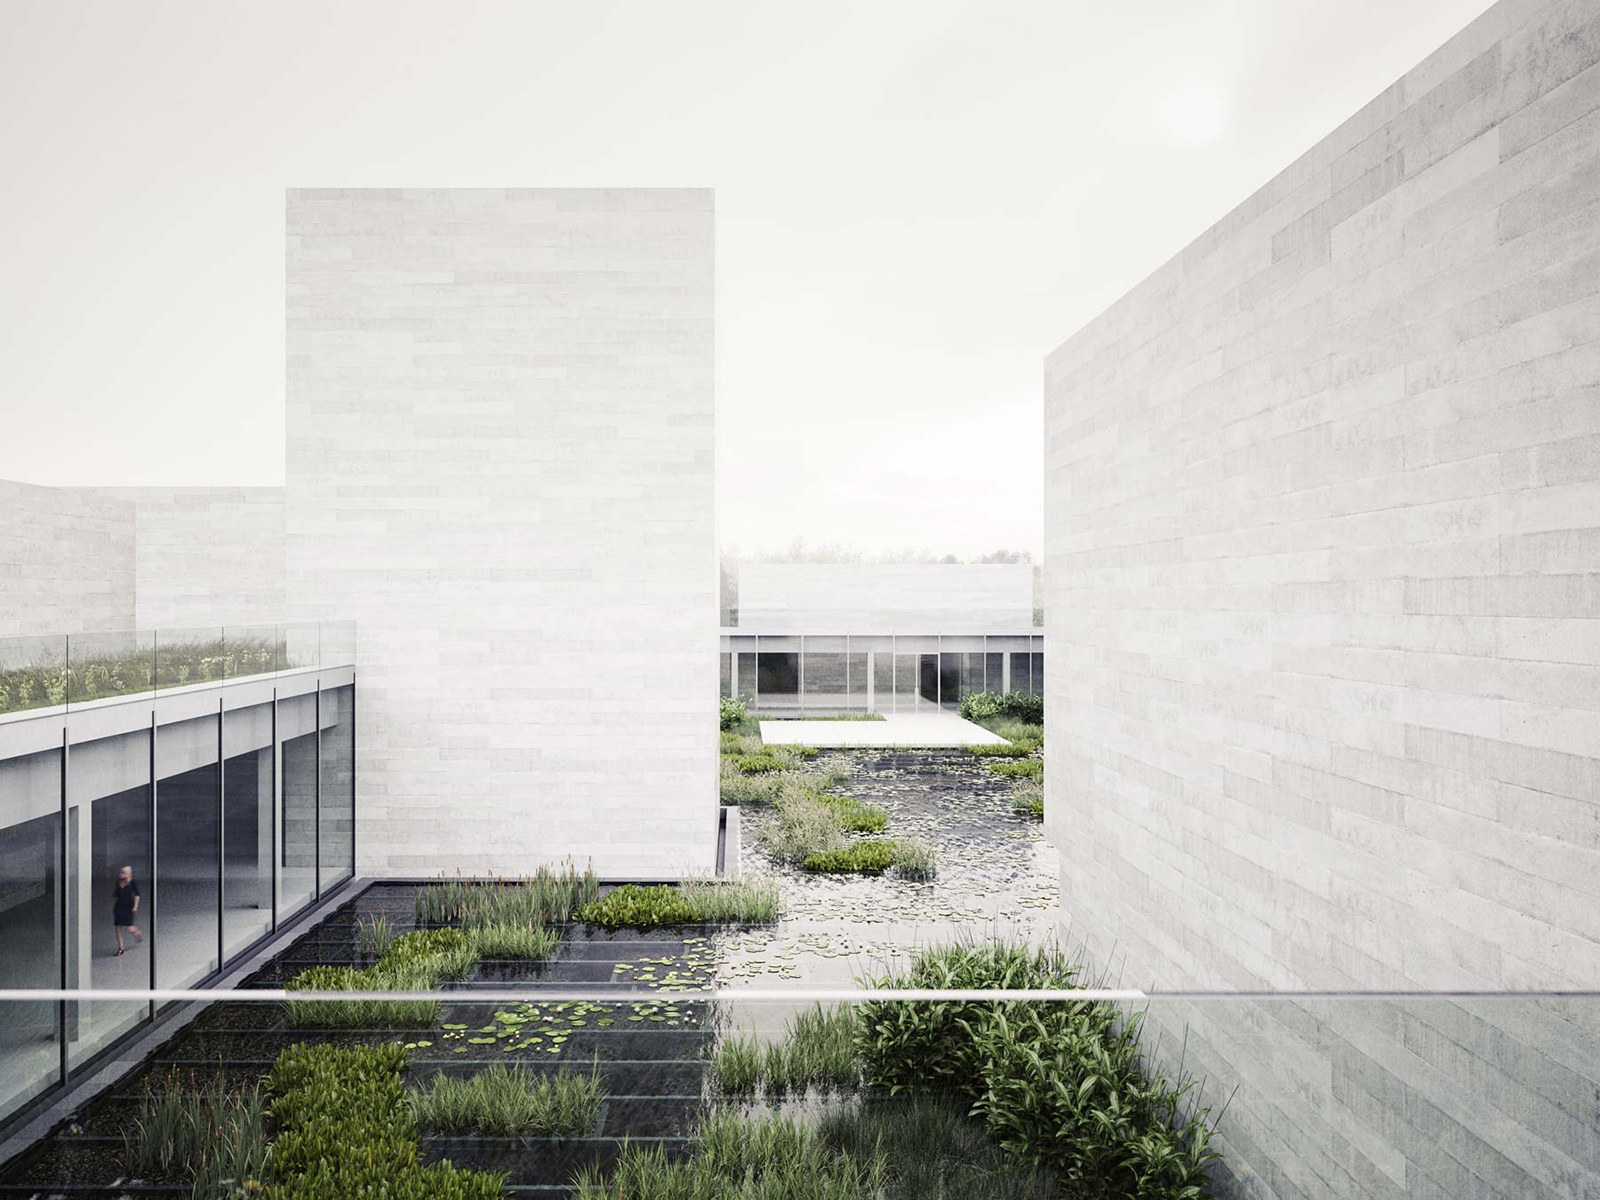 10 new museums opening in 2018: Glenstone Museum in Potomac